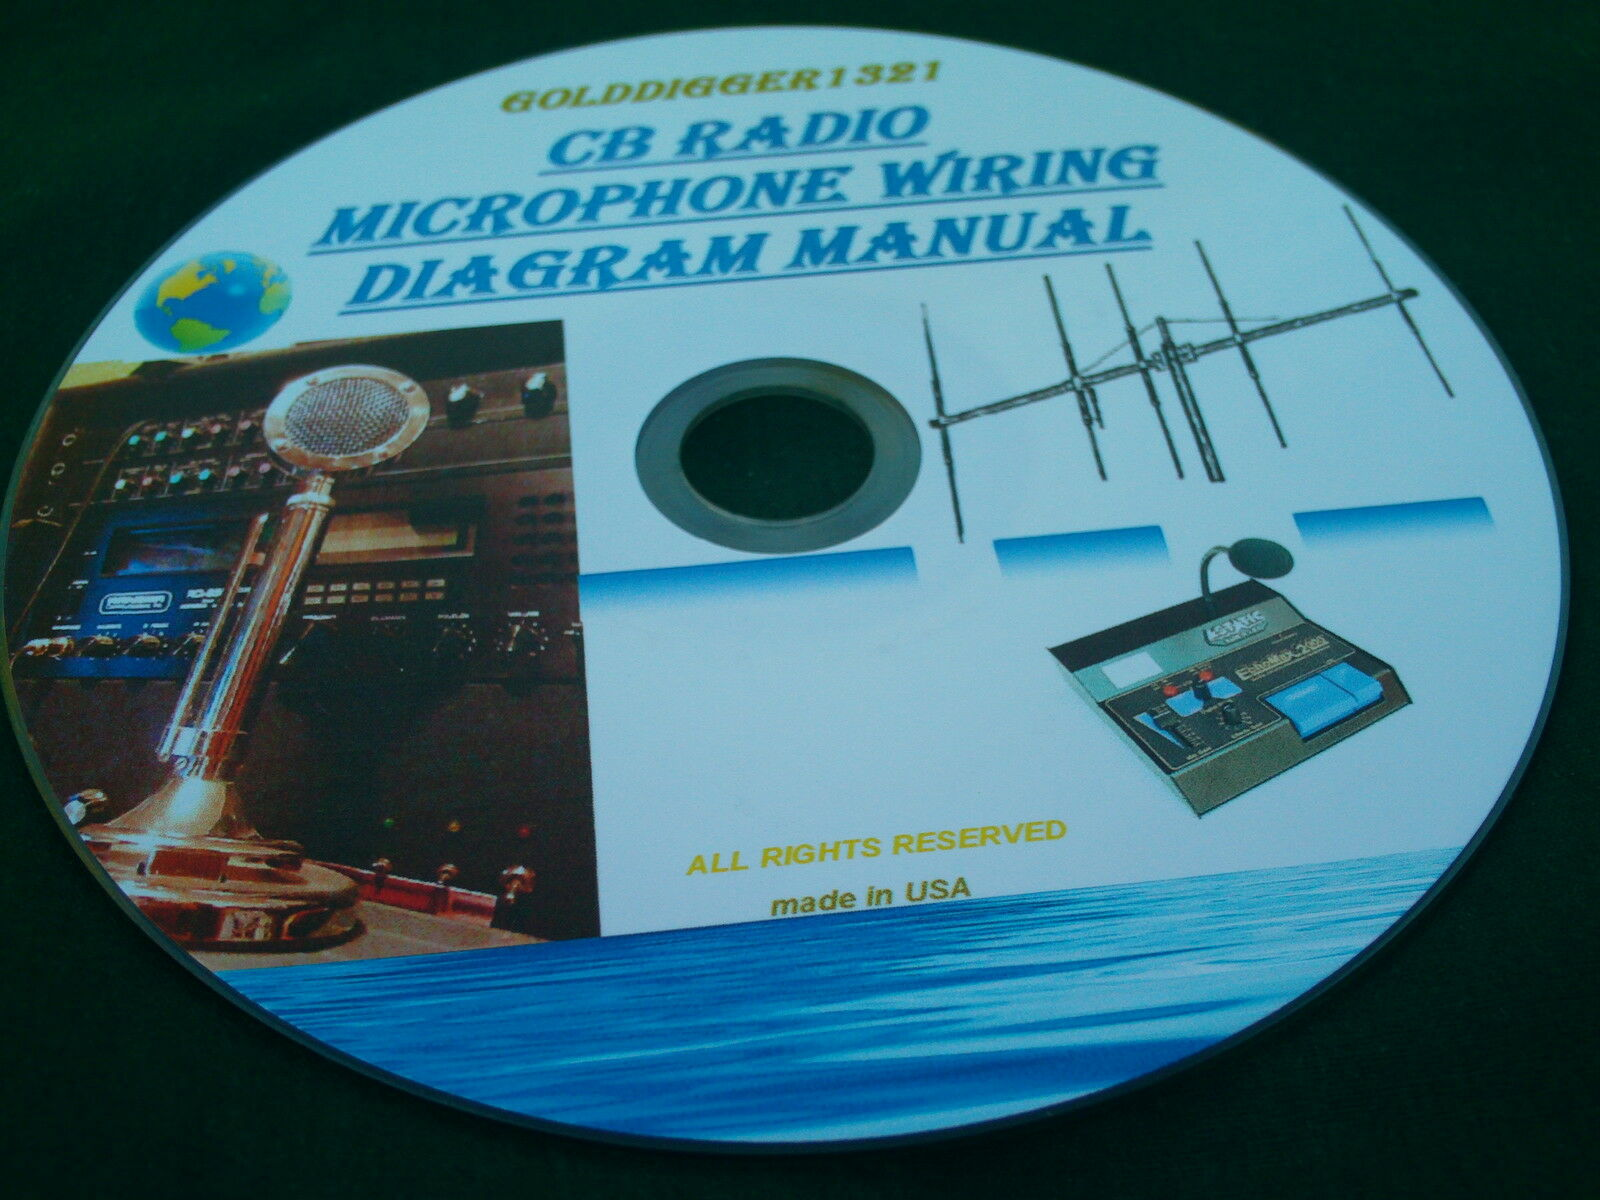 Cb Radio Microphone Wiring Diagram Manual On Cd 1 of 1 See More